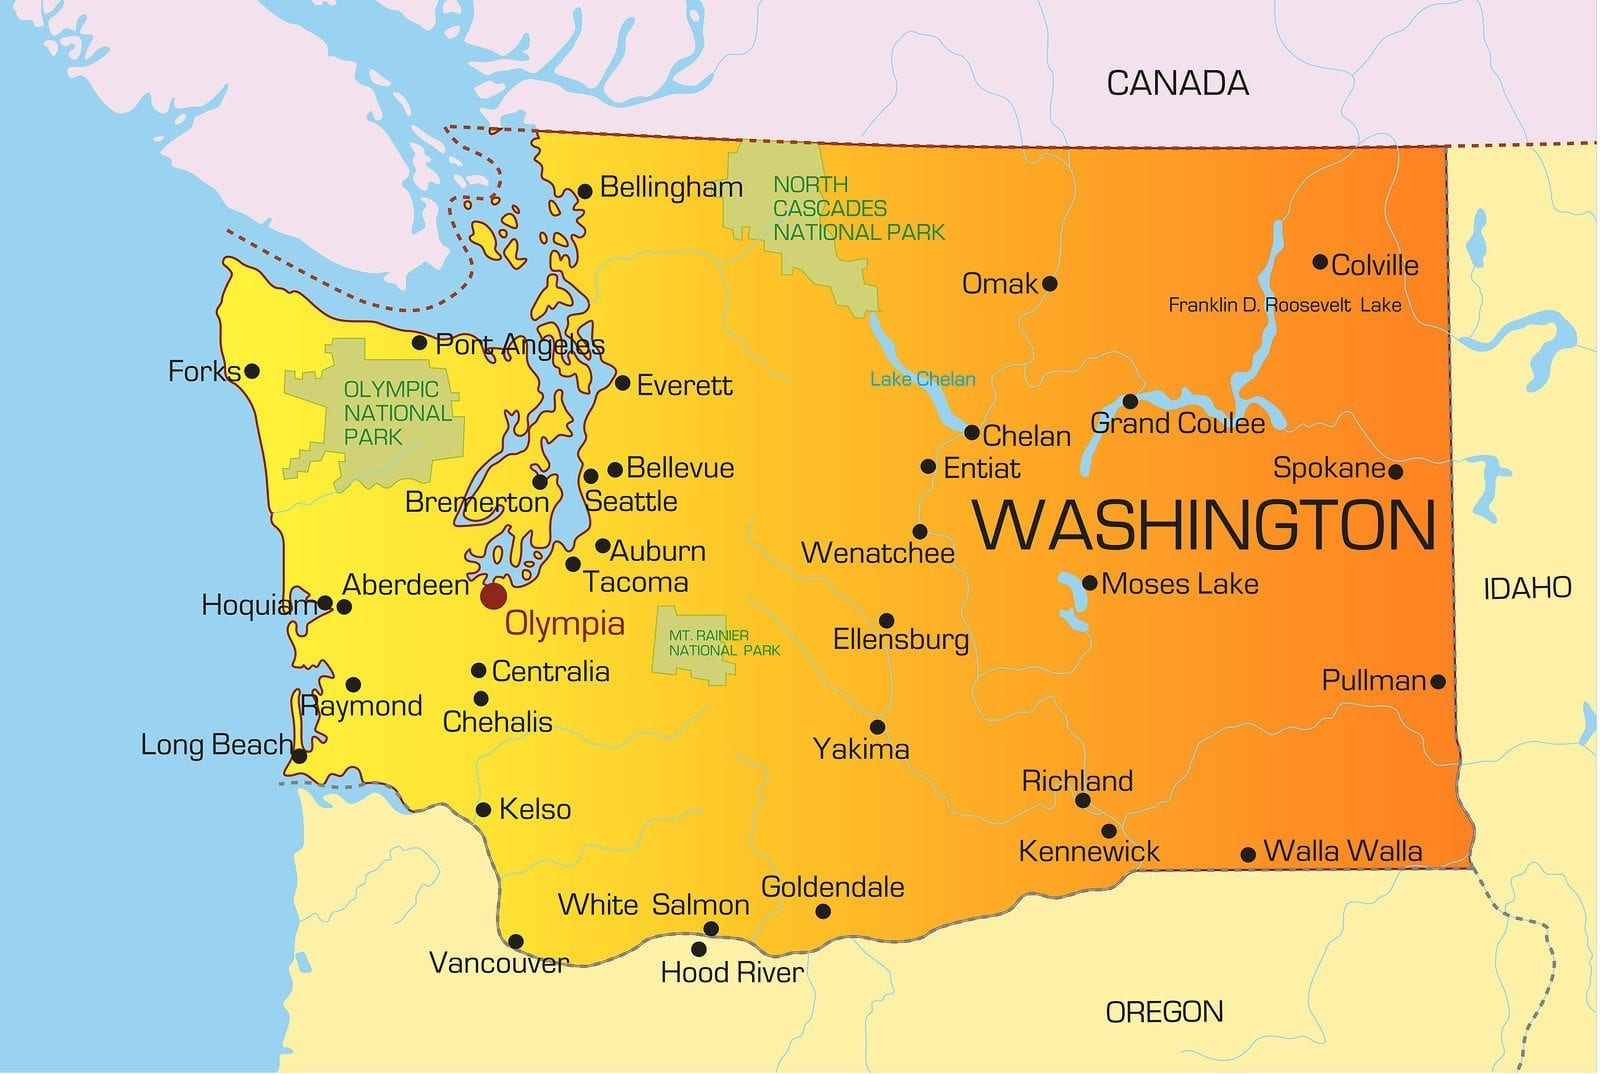 Washington lpn requirements and training programs 1betcityfo Image collections